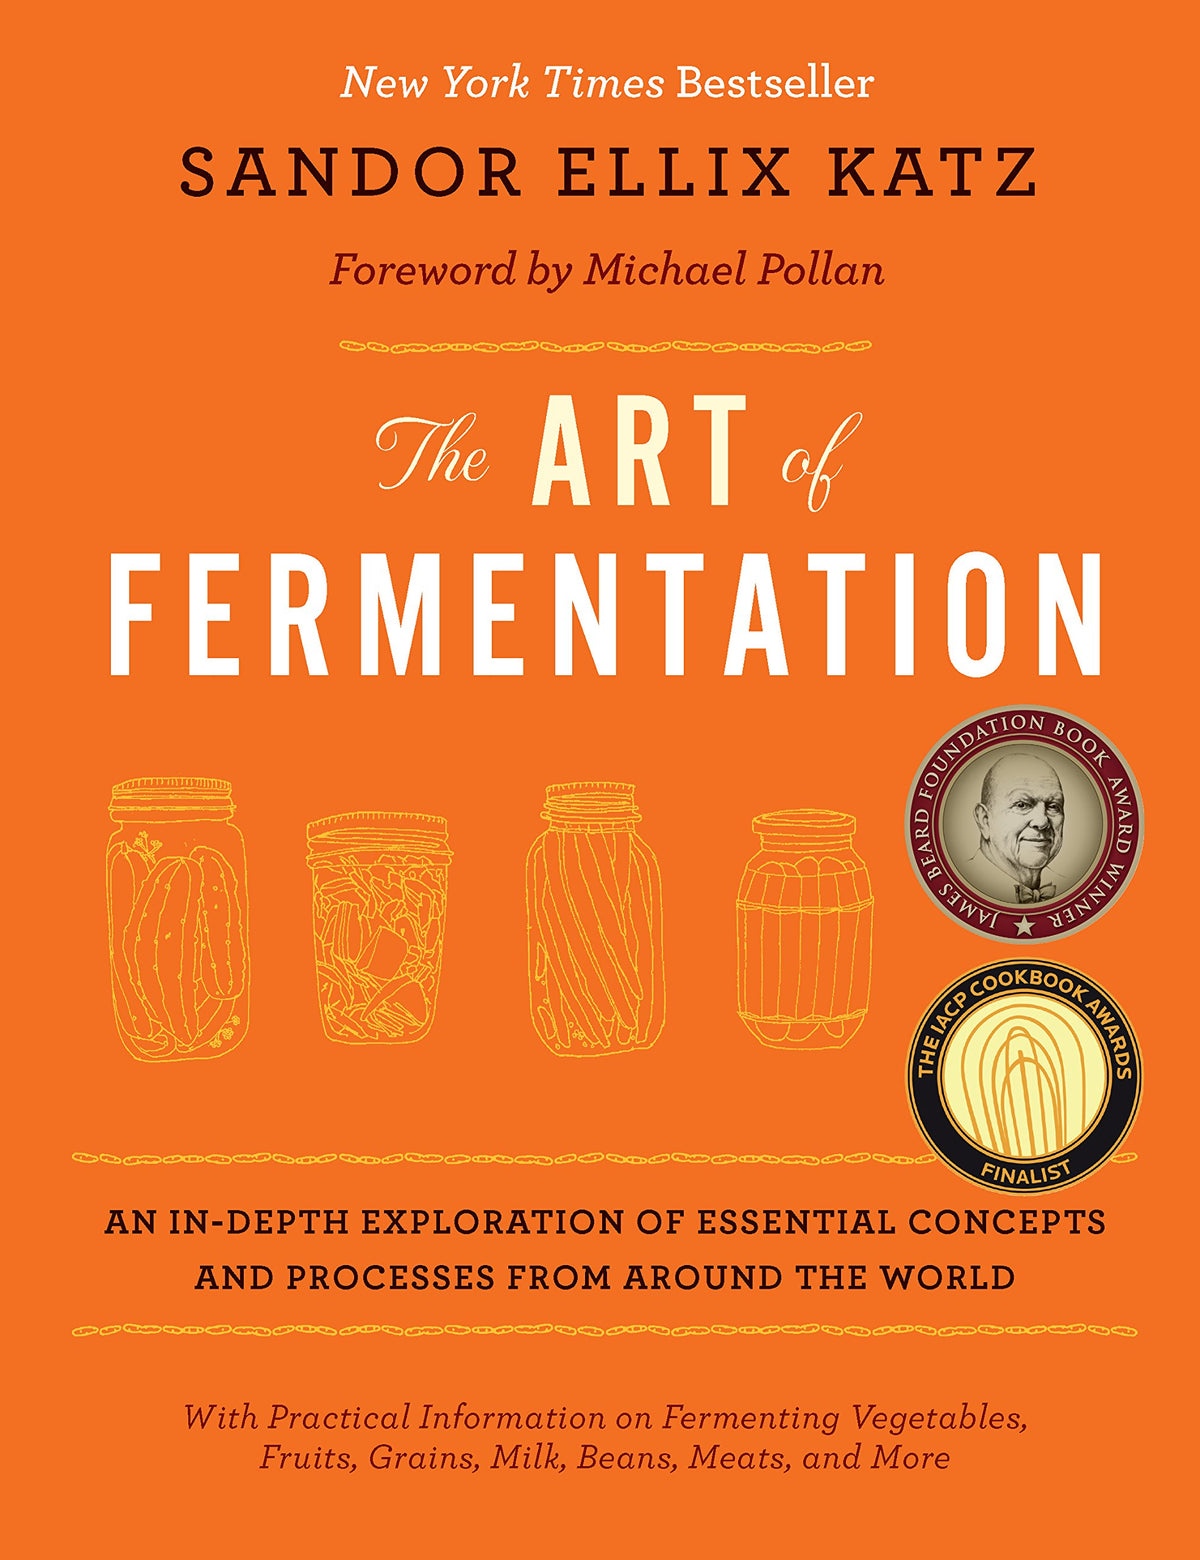 The Art of Fermentation (Sandor Ellix Katz)